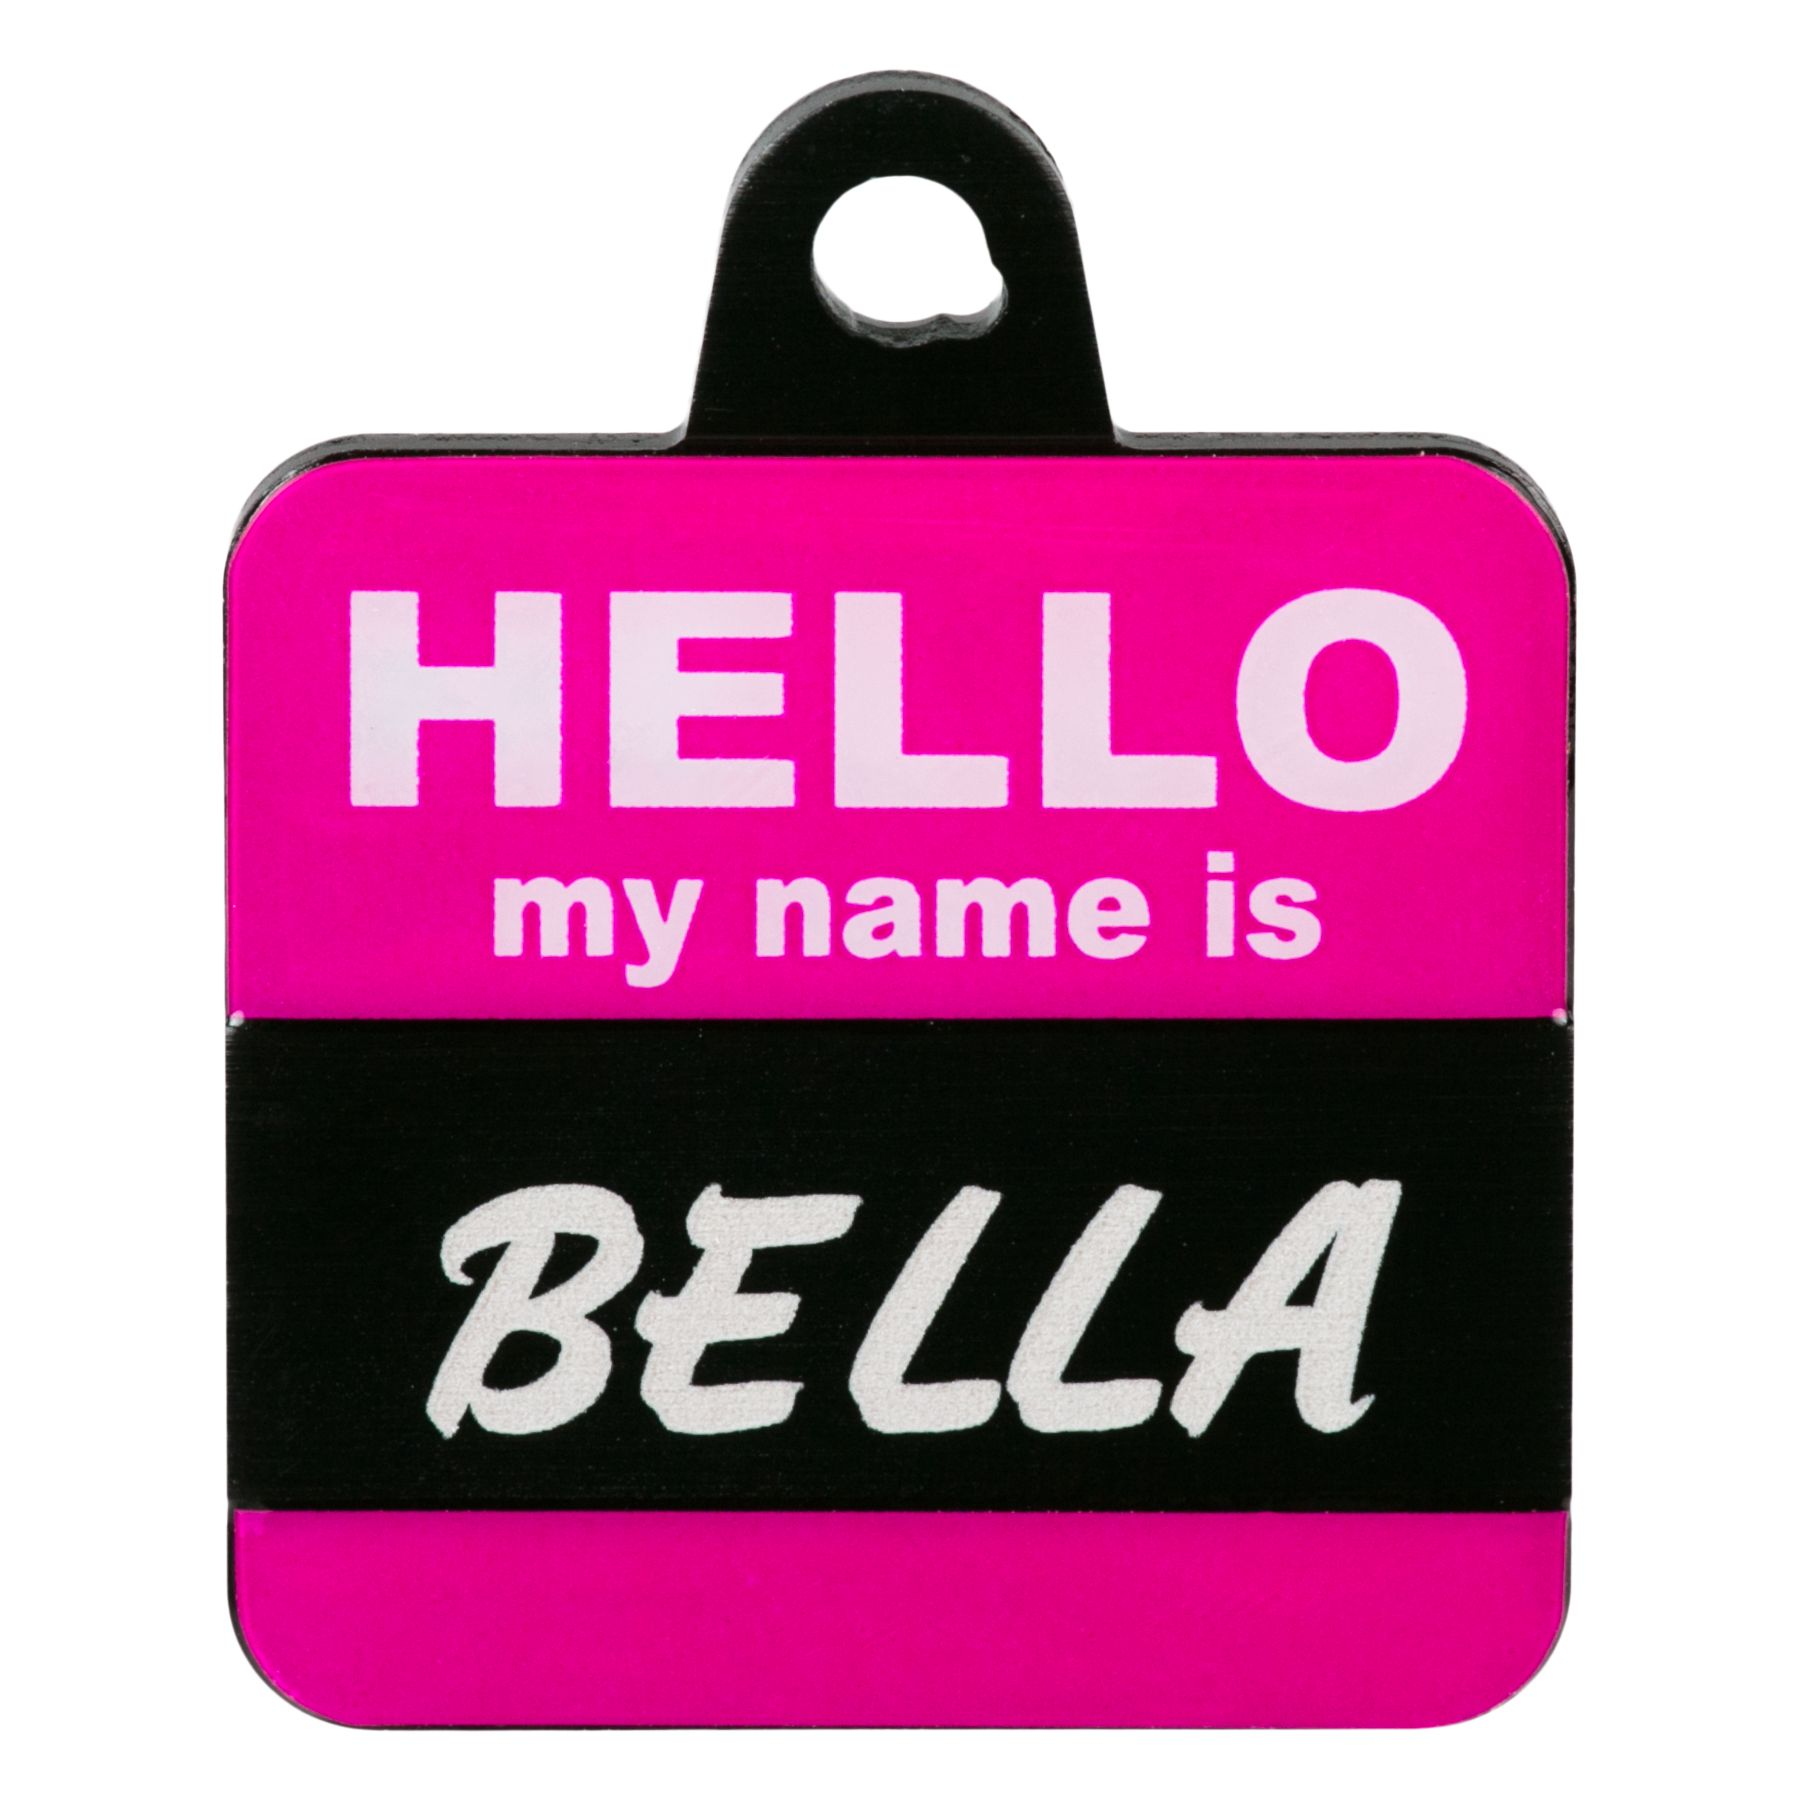 TagWorks® Hello My Name Is Personalized Pet ID Tag, Pink 5234712